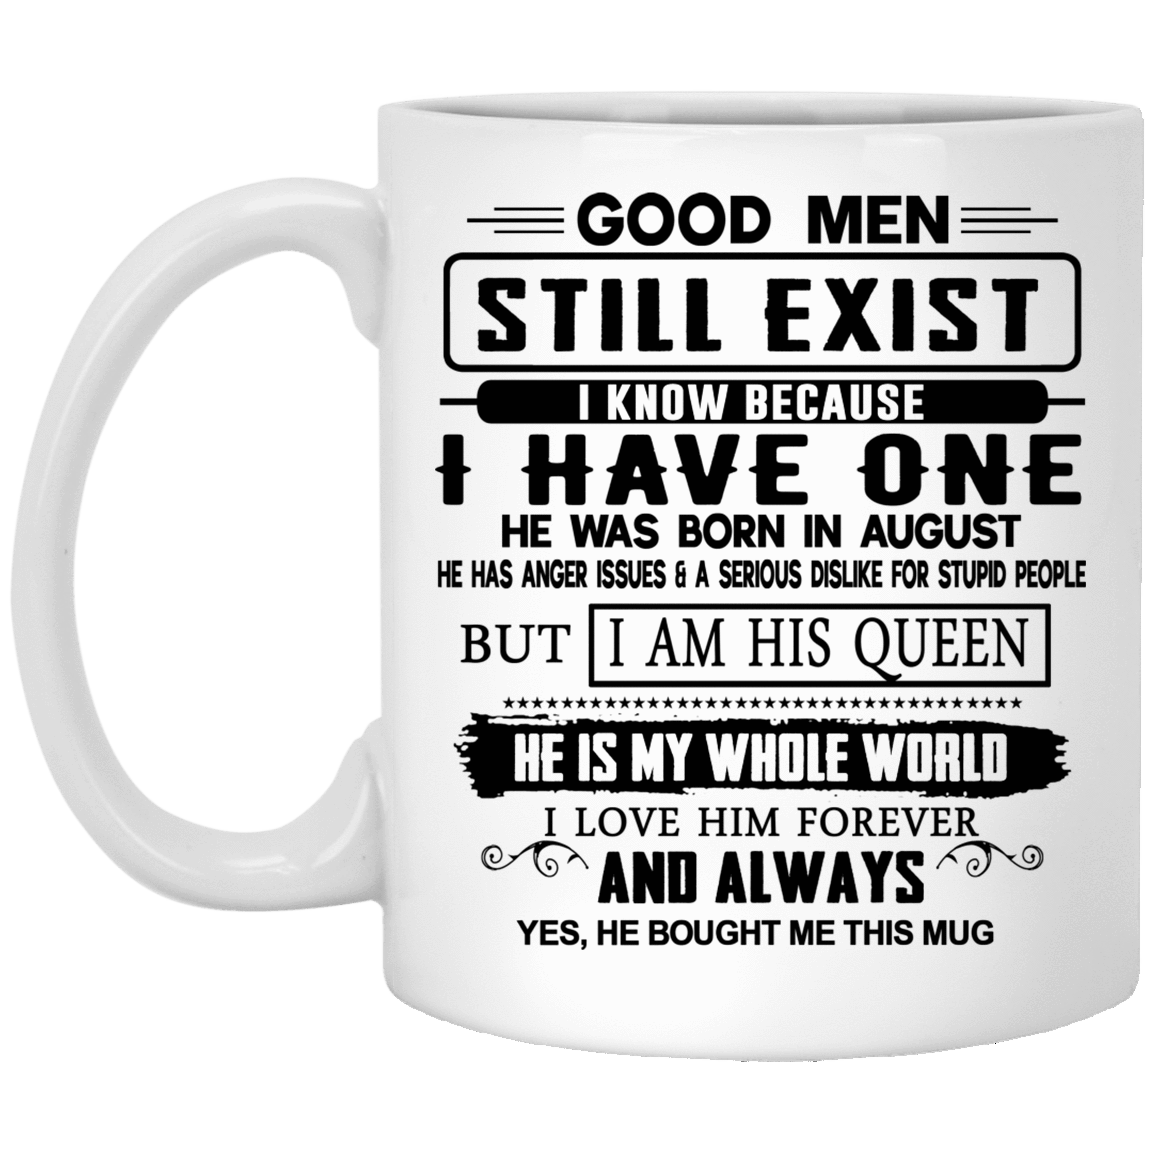 Good Men Still Exist I Have One He Was Born In August Mug 1005-9786-76399502-47417 - Tee Ript